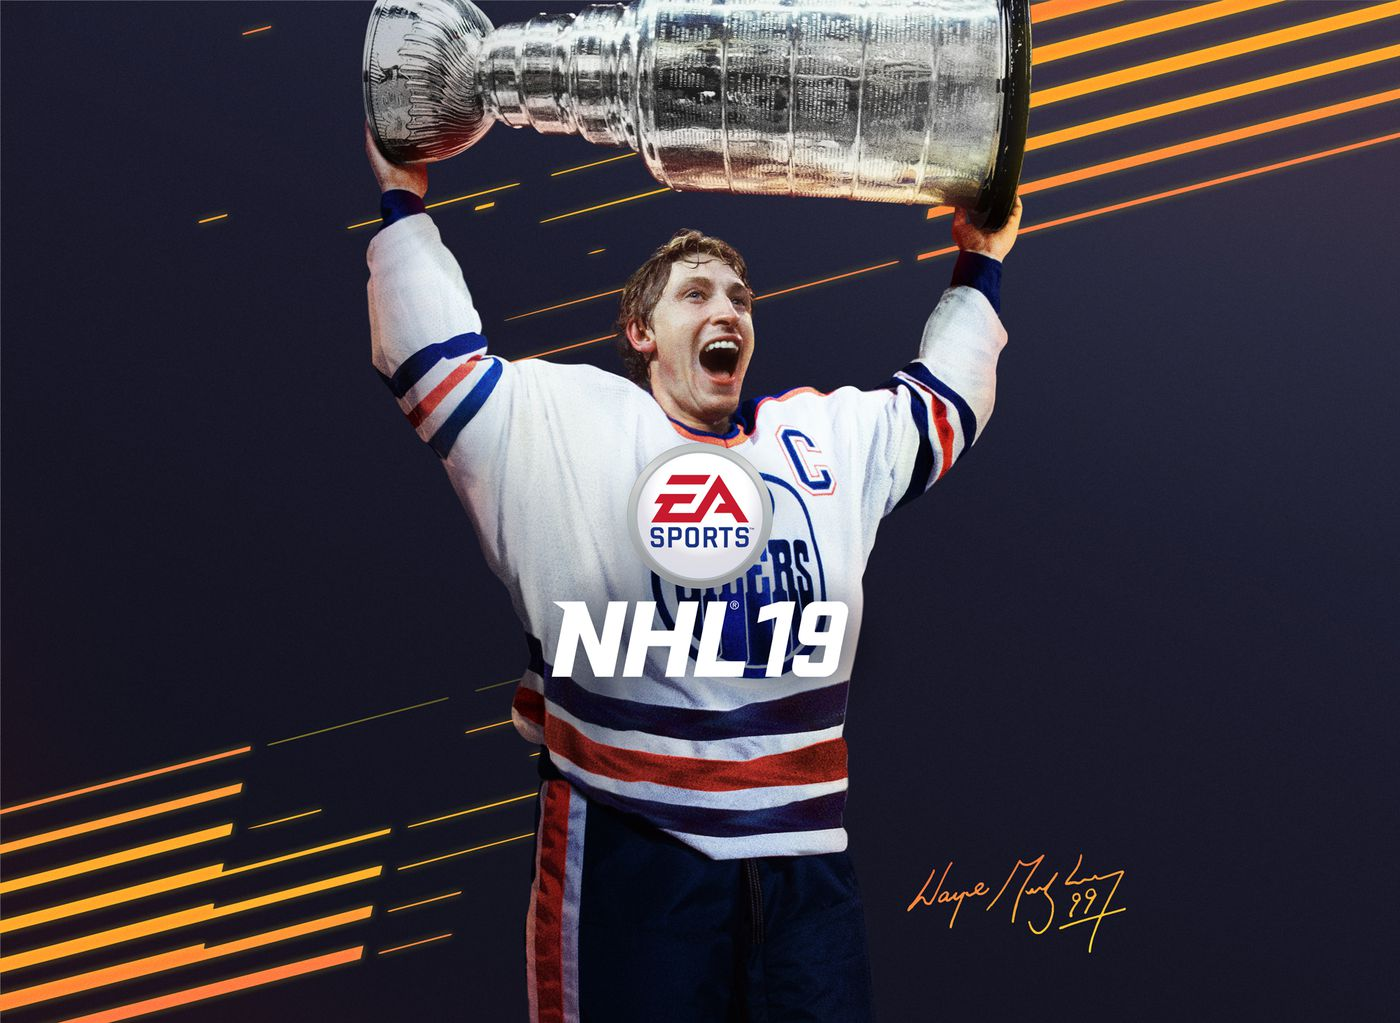 NHL 19 release date, cover athlete revealed at 2018 NHL Awards - Polygon